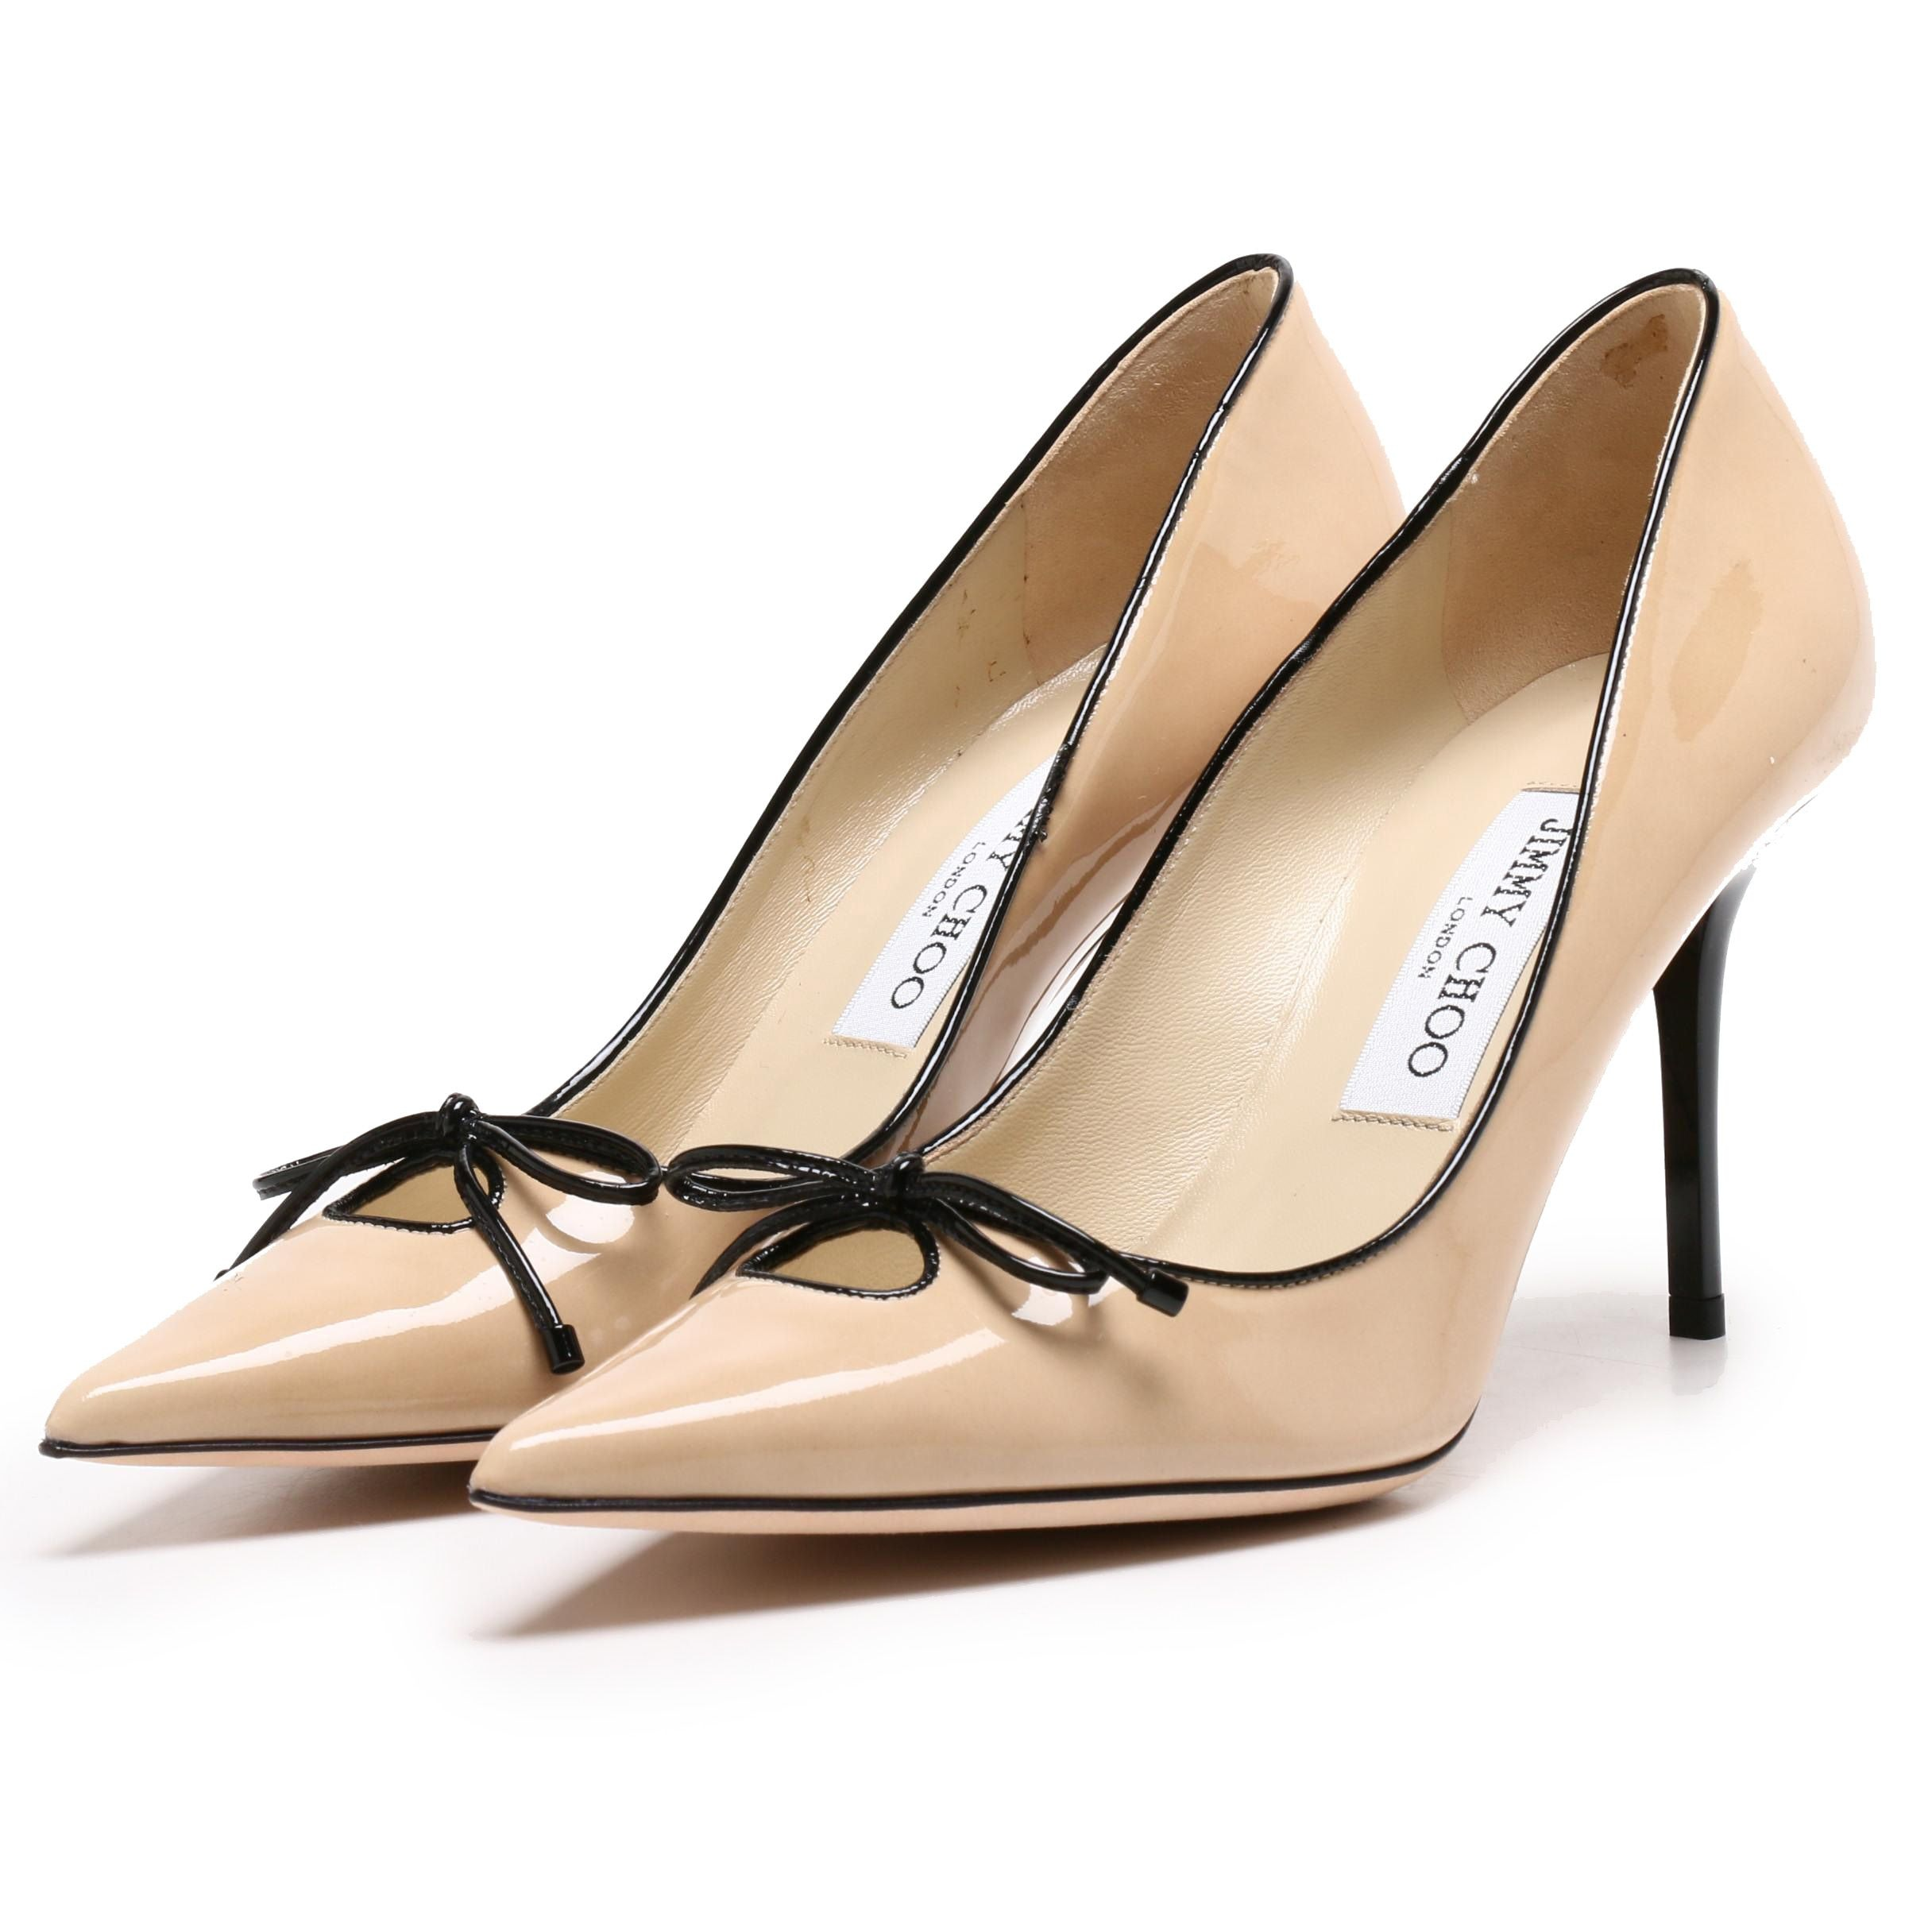 Jimmy Choo London Tan Patent Leather Pumps Trimmed in Black with Bow